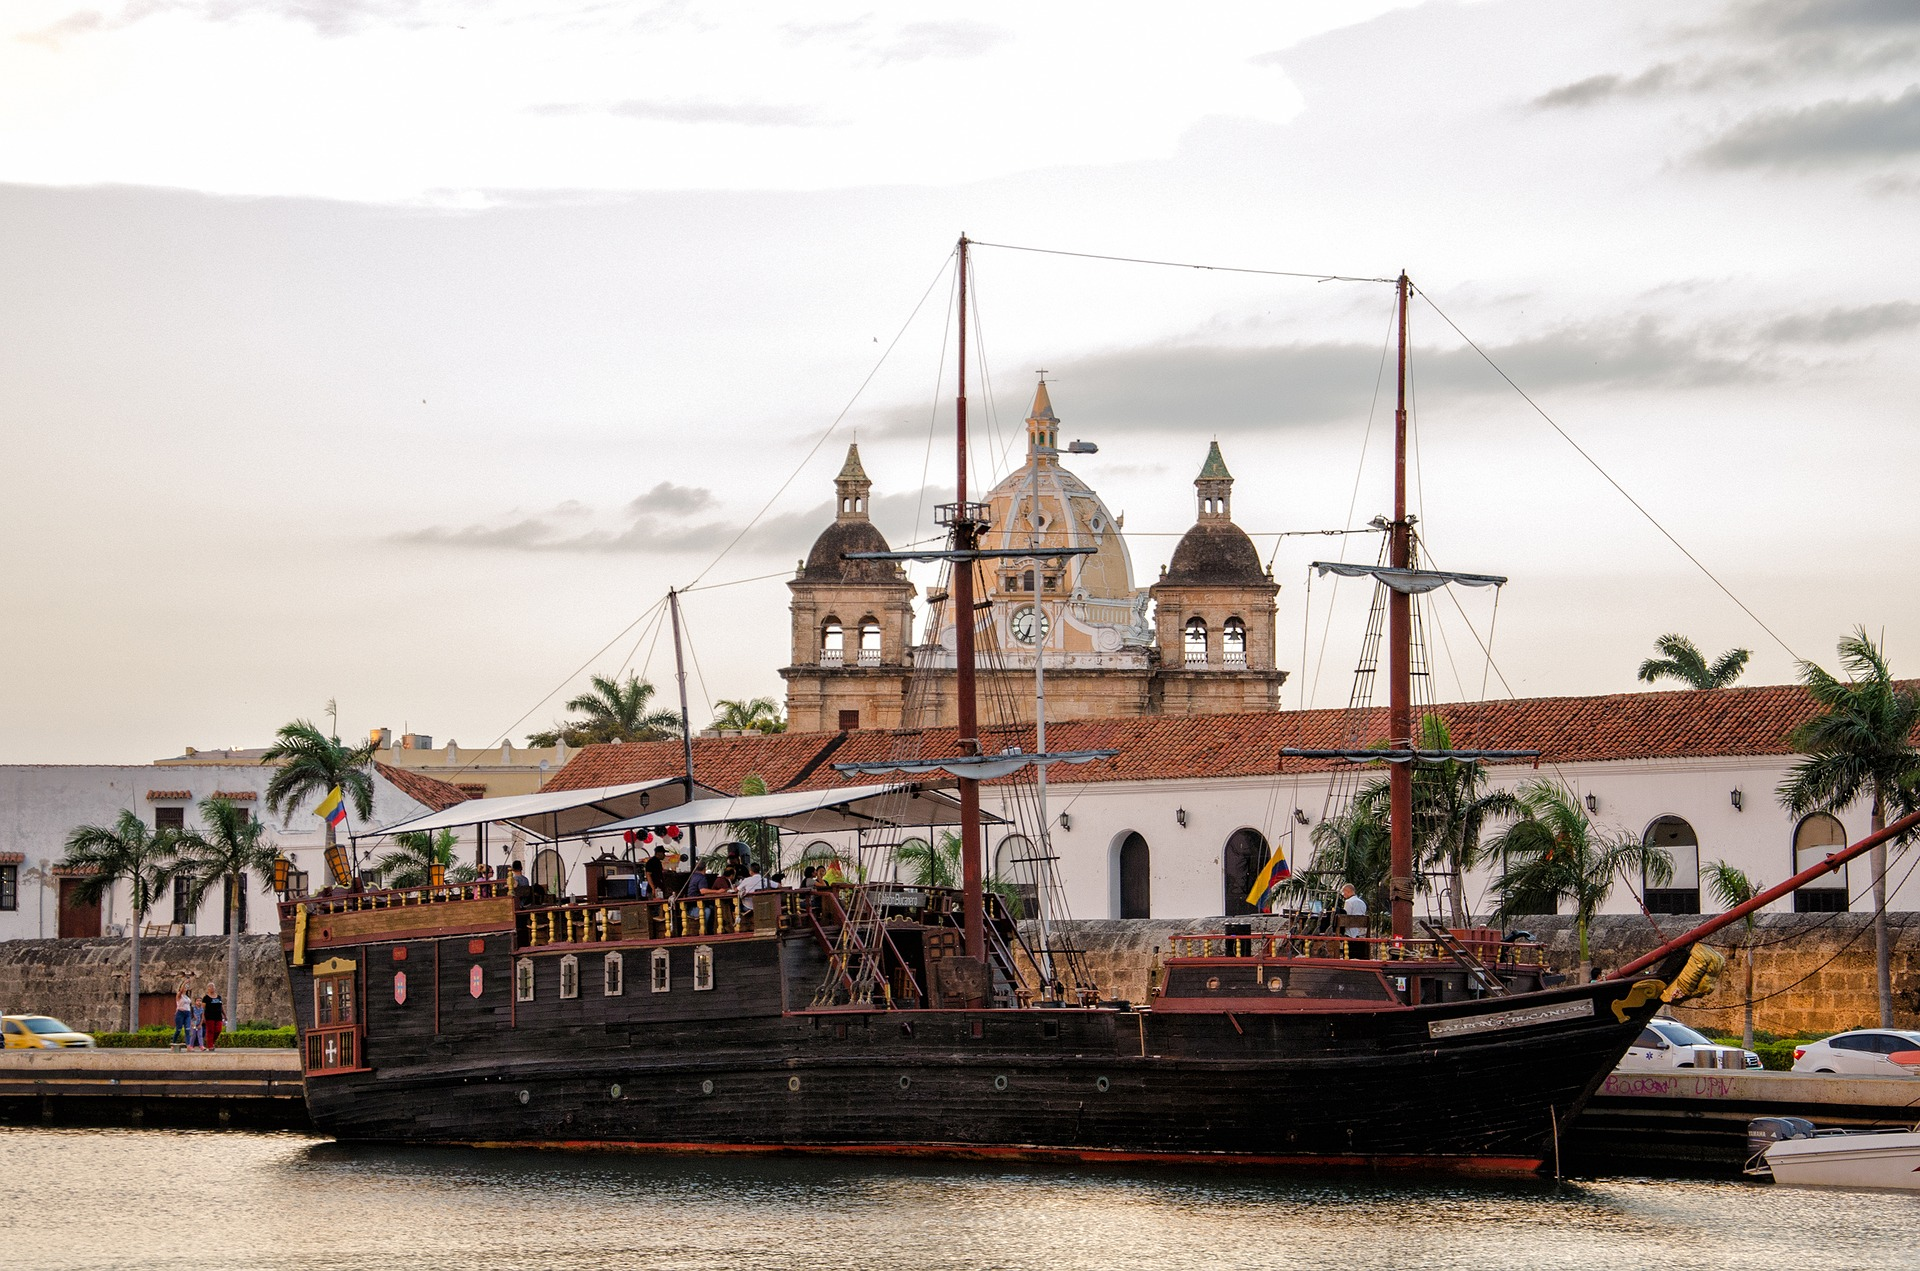 7 Pictures That Will Make You Want To Book A Trip: These 25 Photos Of Cartagena Will Make You Want To Book A Trip Right Now